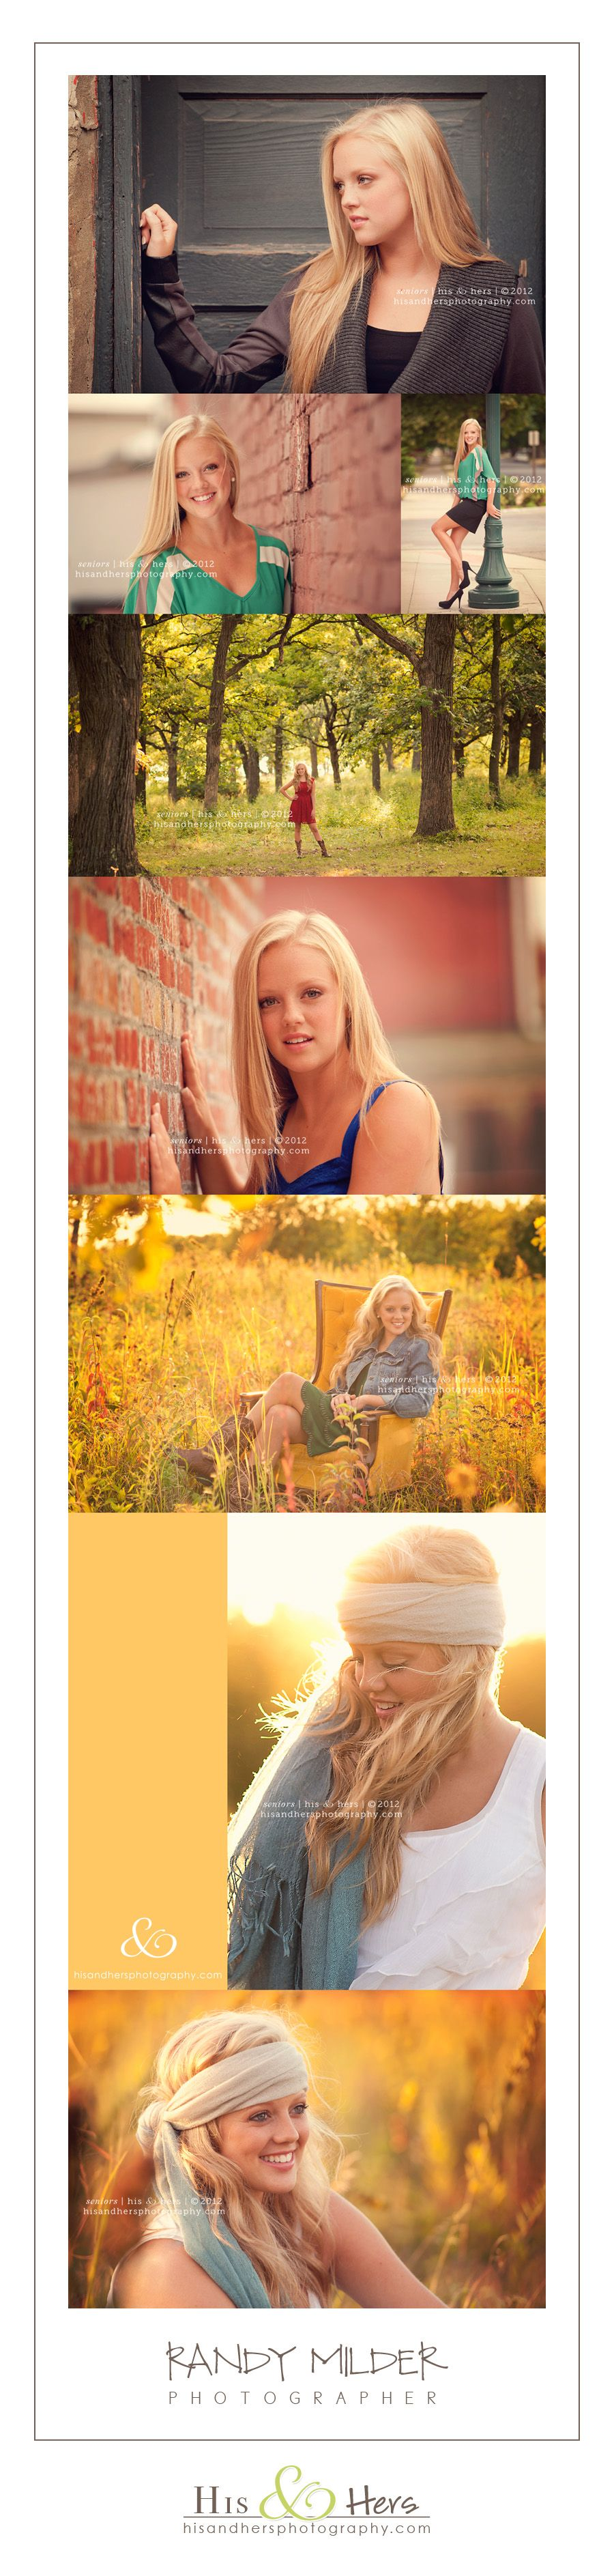 iowa high school senior portraits, des moines senior portrait photographer, des moines senior pictures photographer, des moines iowa senior pictures, des moines iowa senior portraits